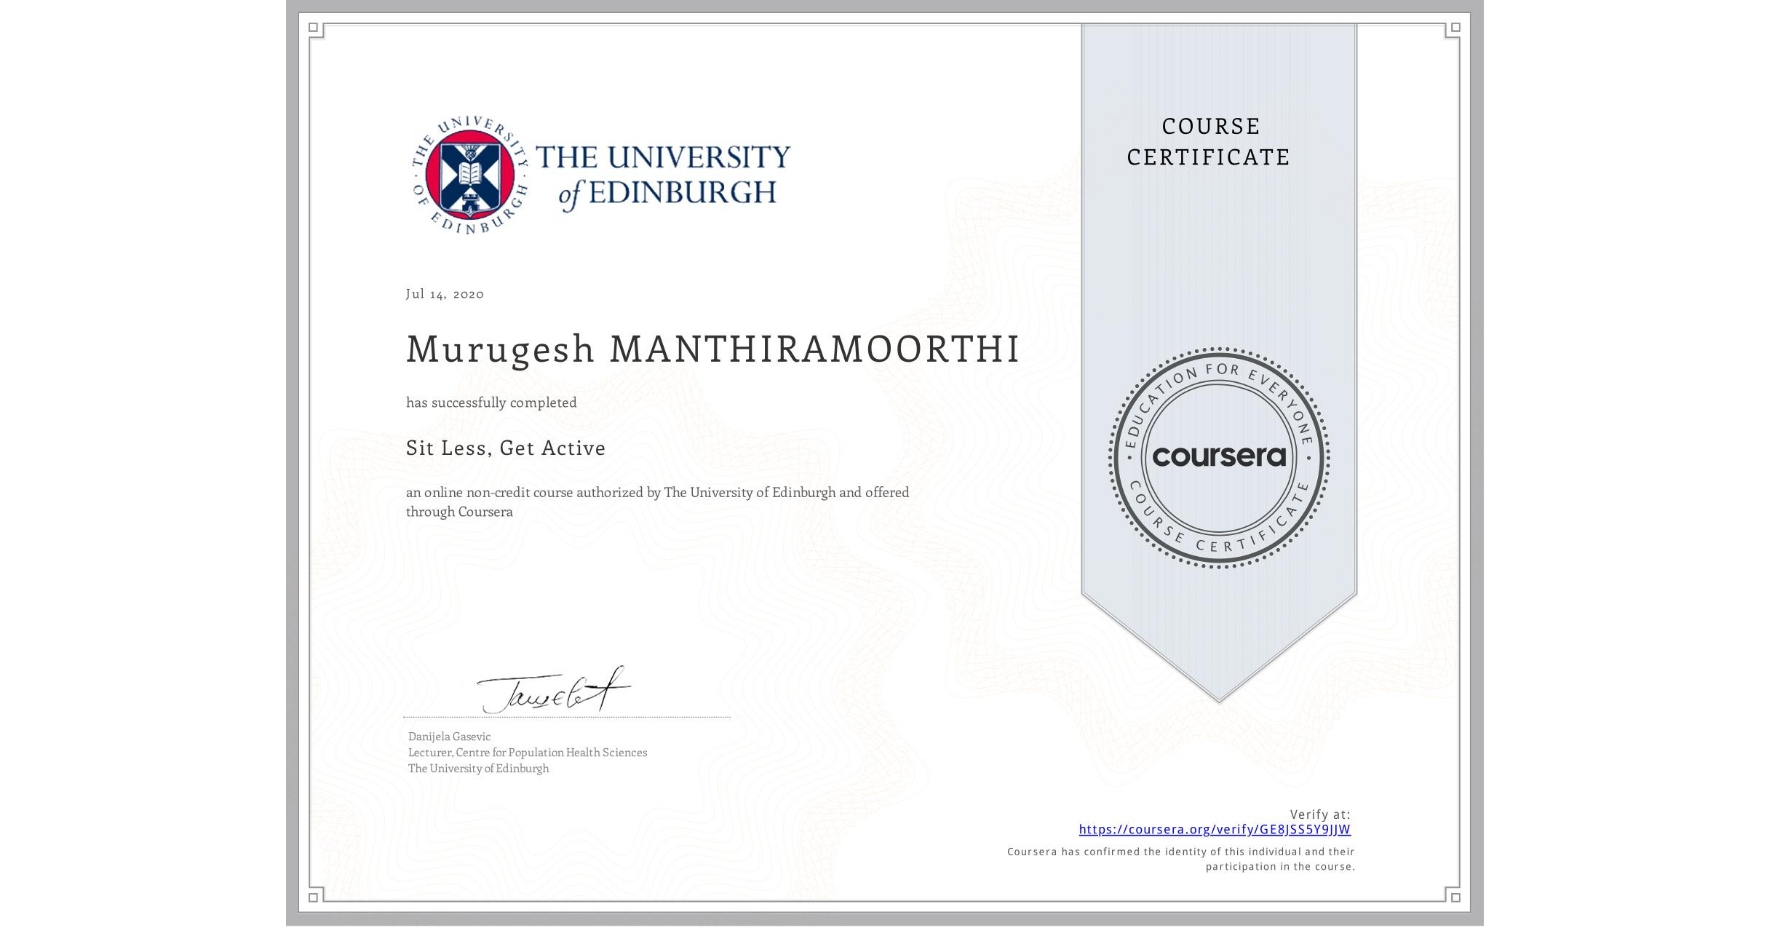 View certificate for Murugesh Manthiramoorthi, Sit Less, Get Active, an online non-credit course authorized by The University of Edinburgh and offered through Coursera